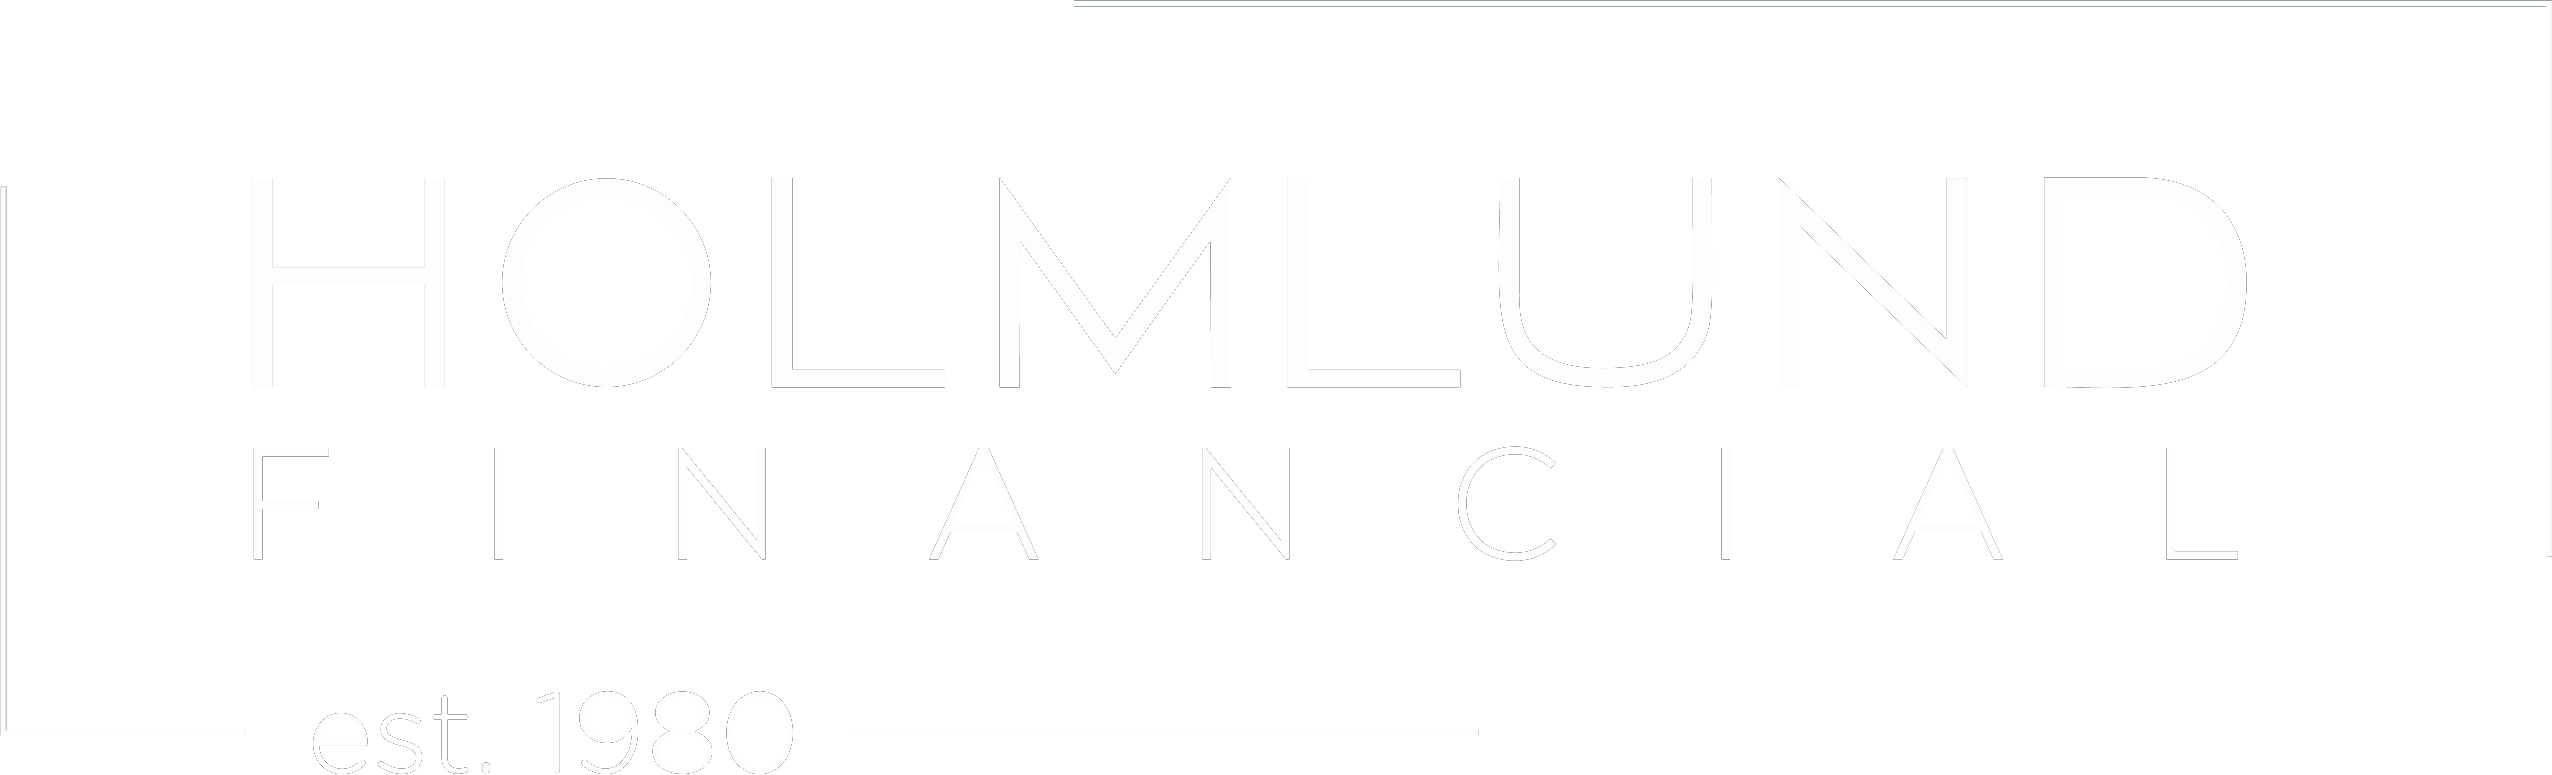 Logo for Holmlund Financial